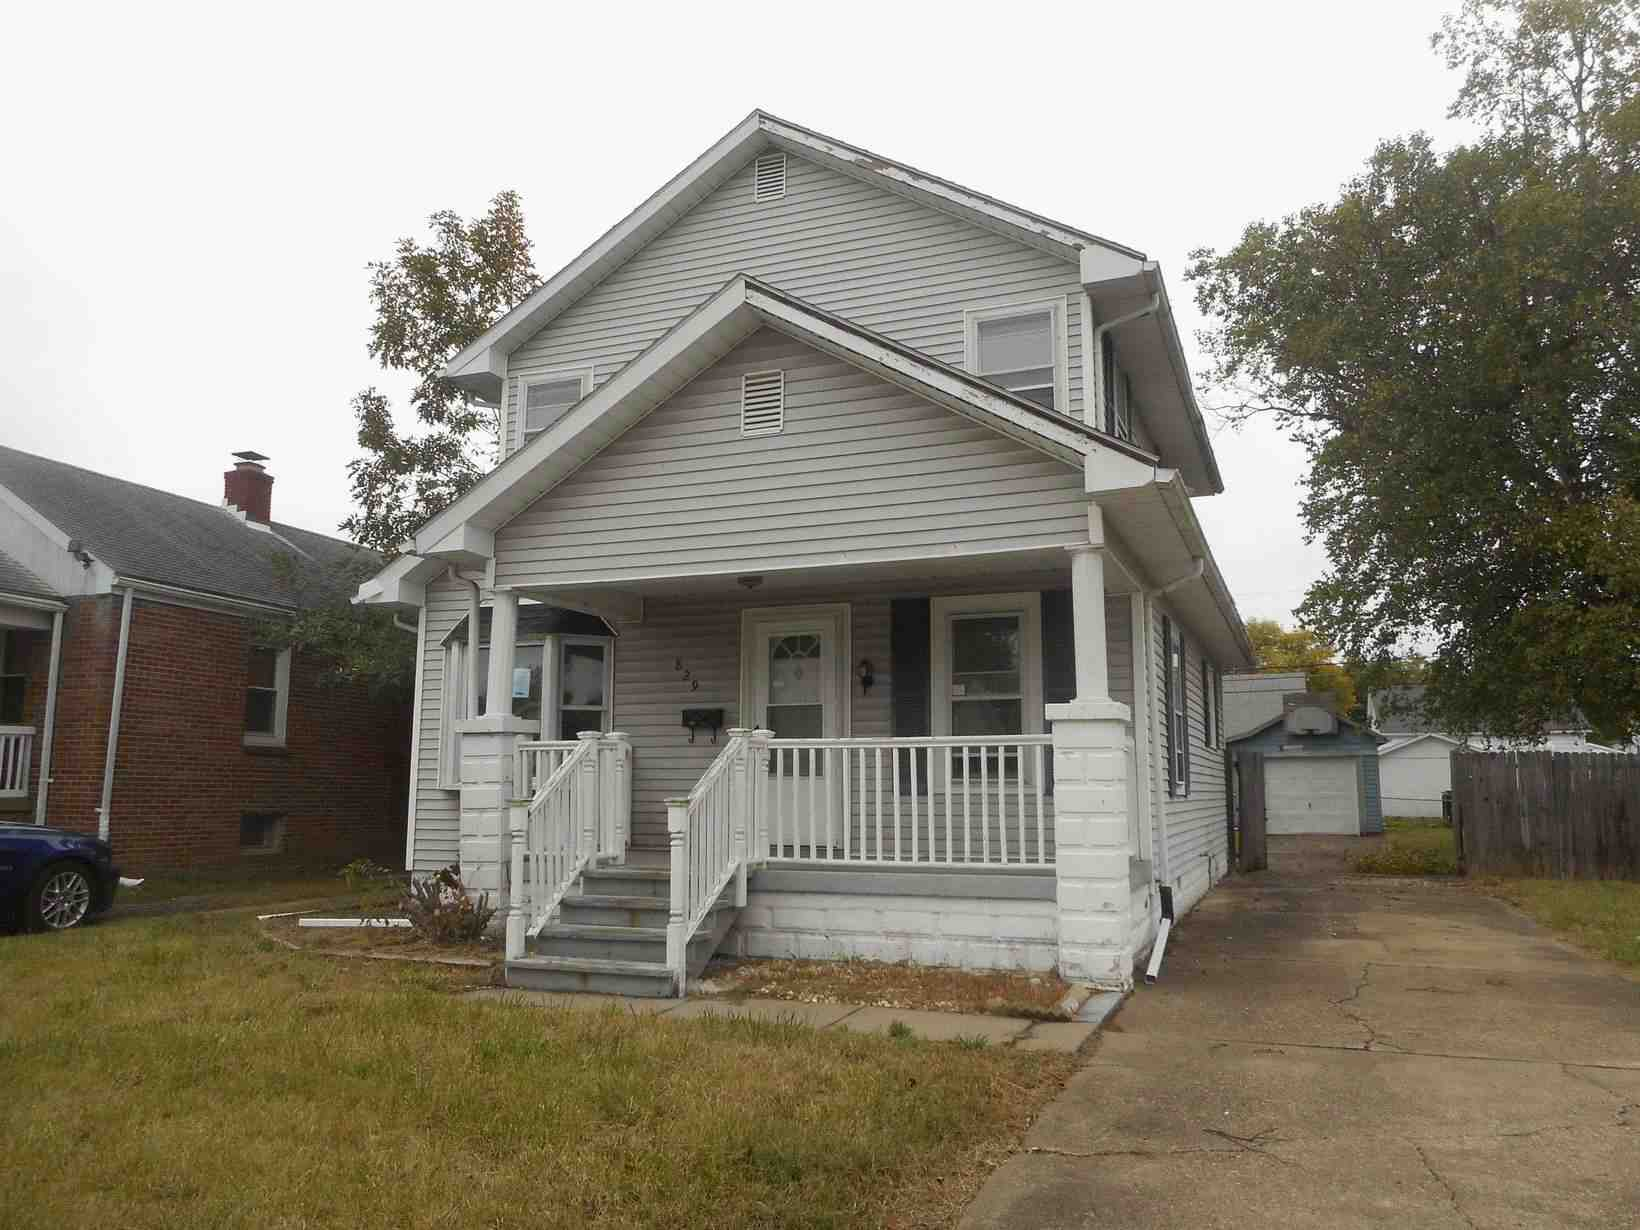 829 Lohoff Ave, Evansville IN Foreclosure Property